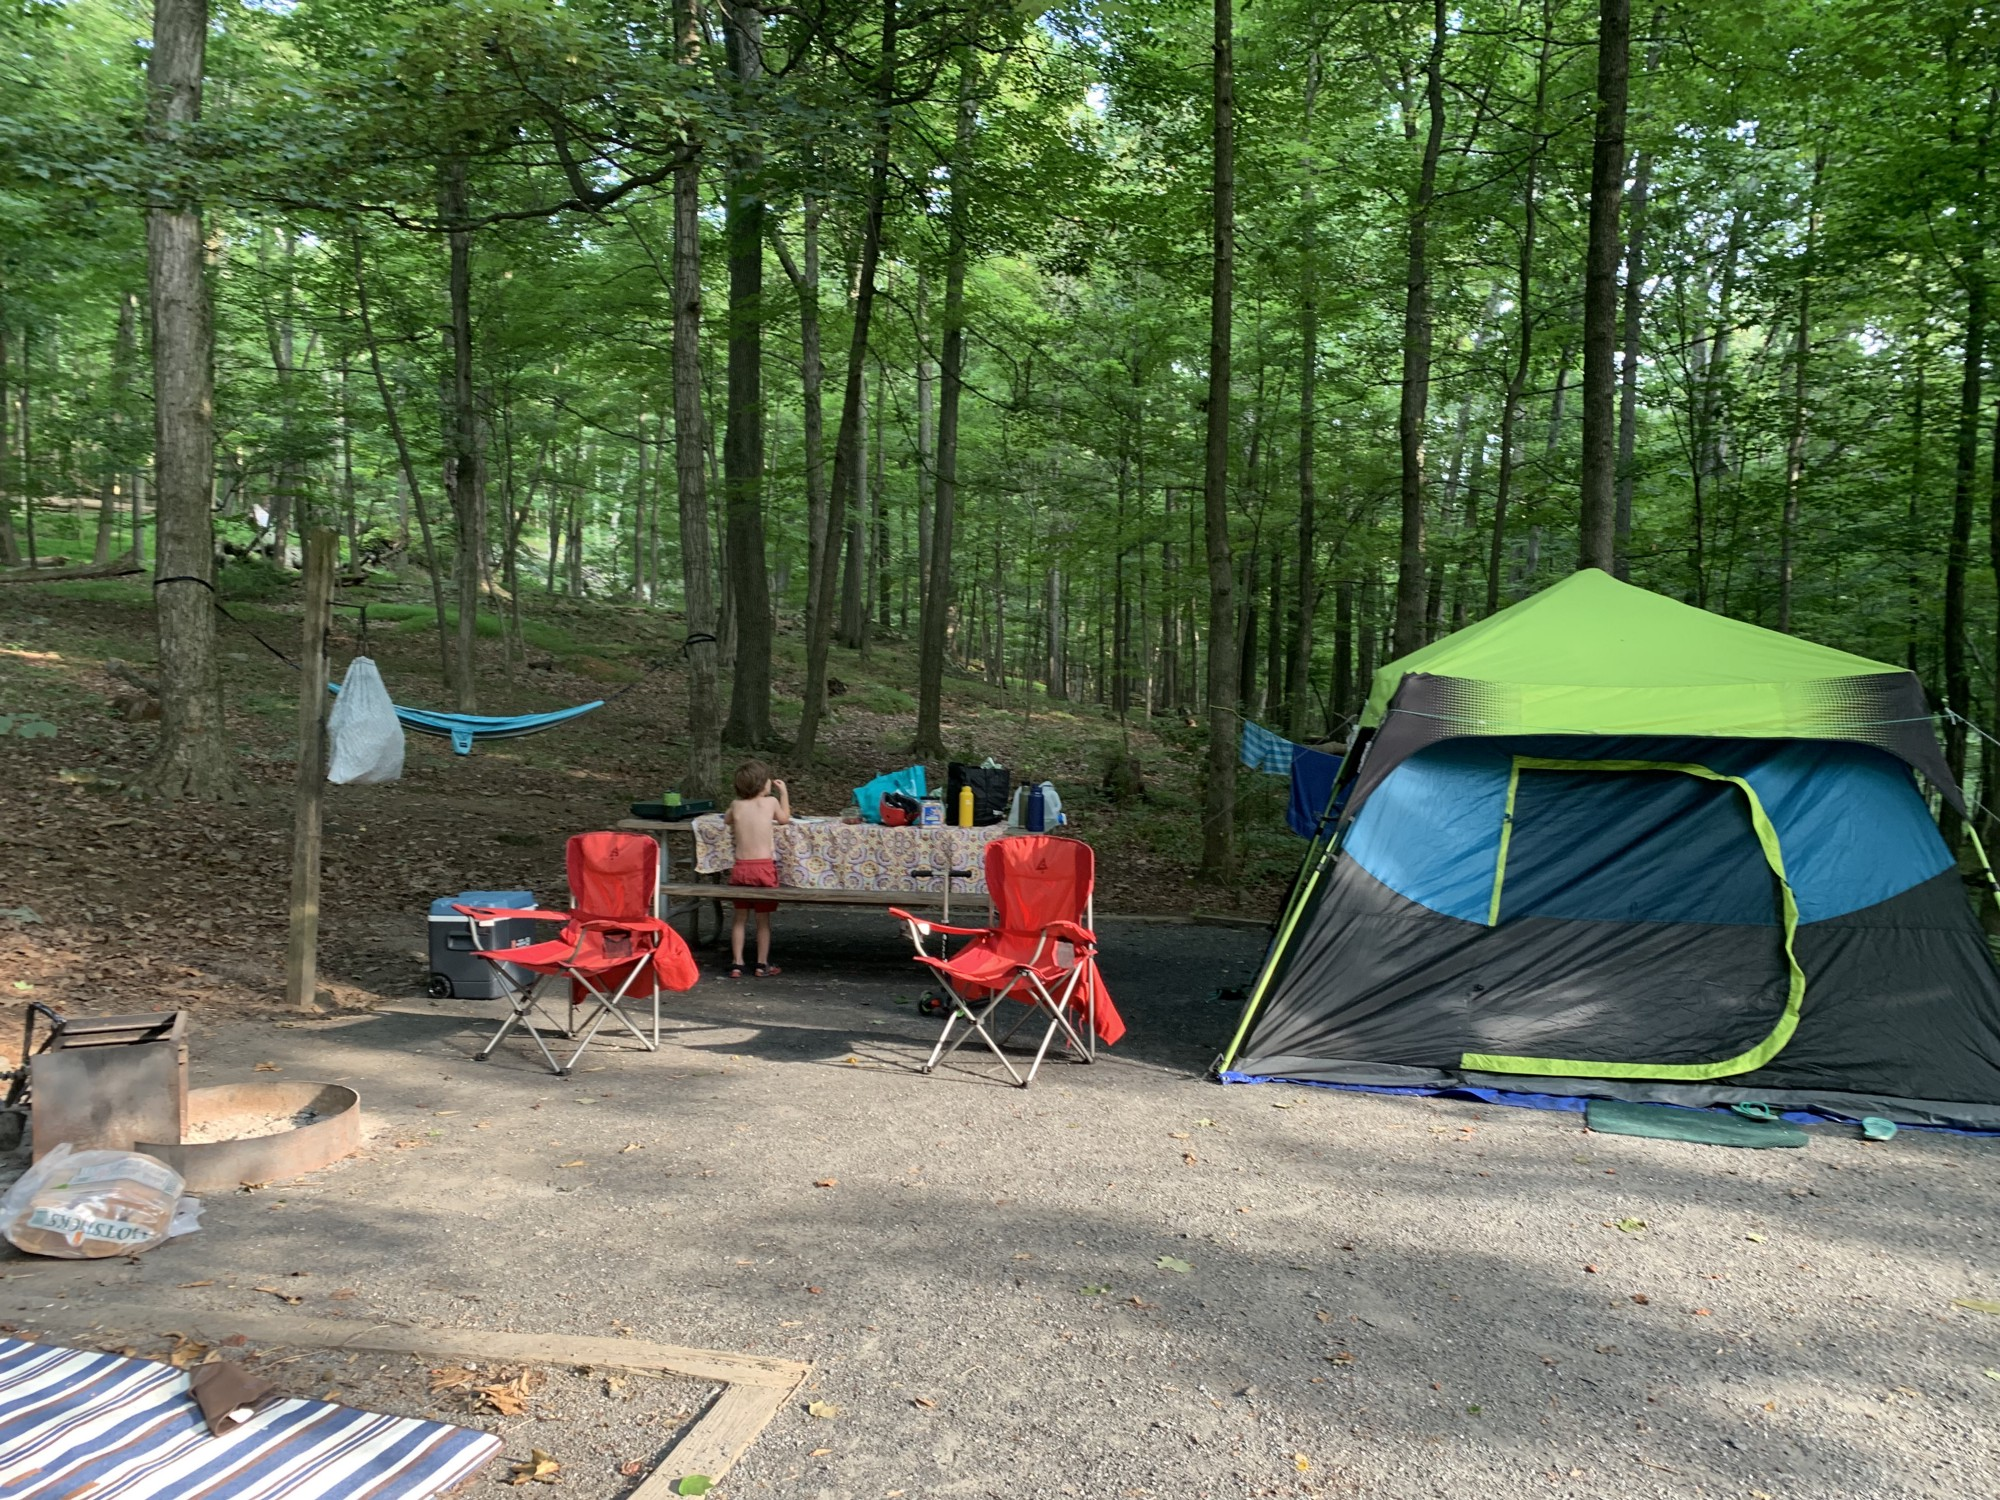 A camp site with a tent, picnic table, fire pit, hammock and other basics.